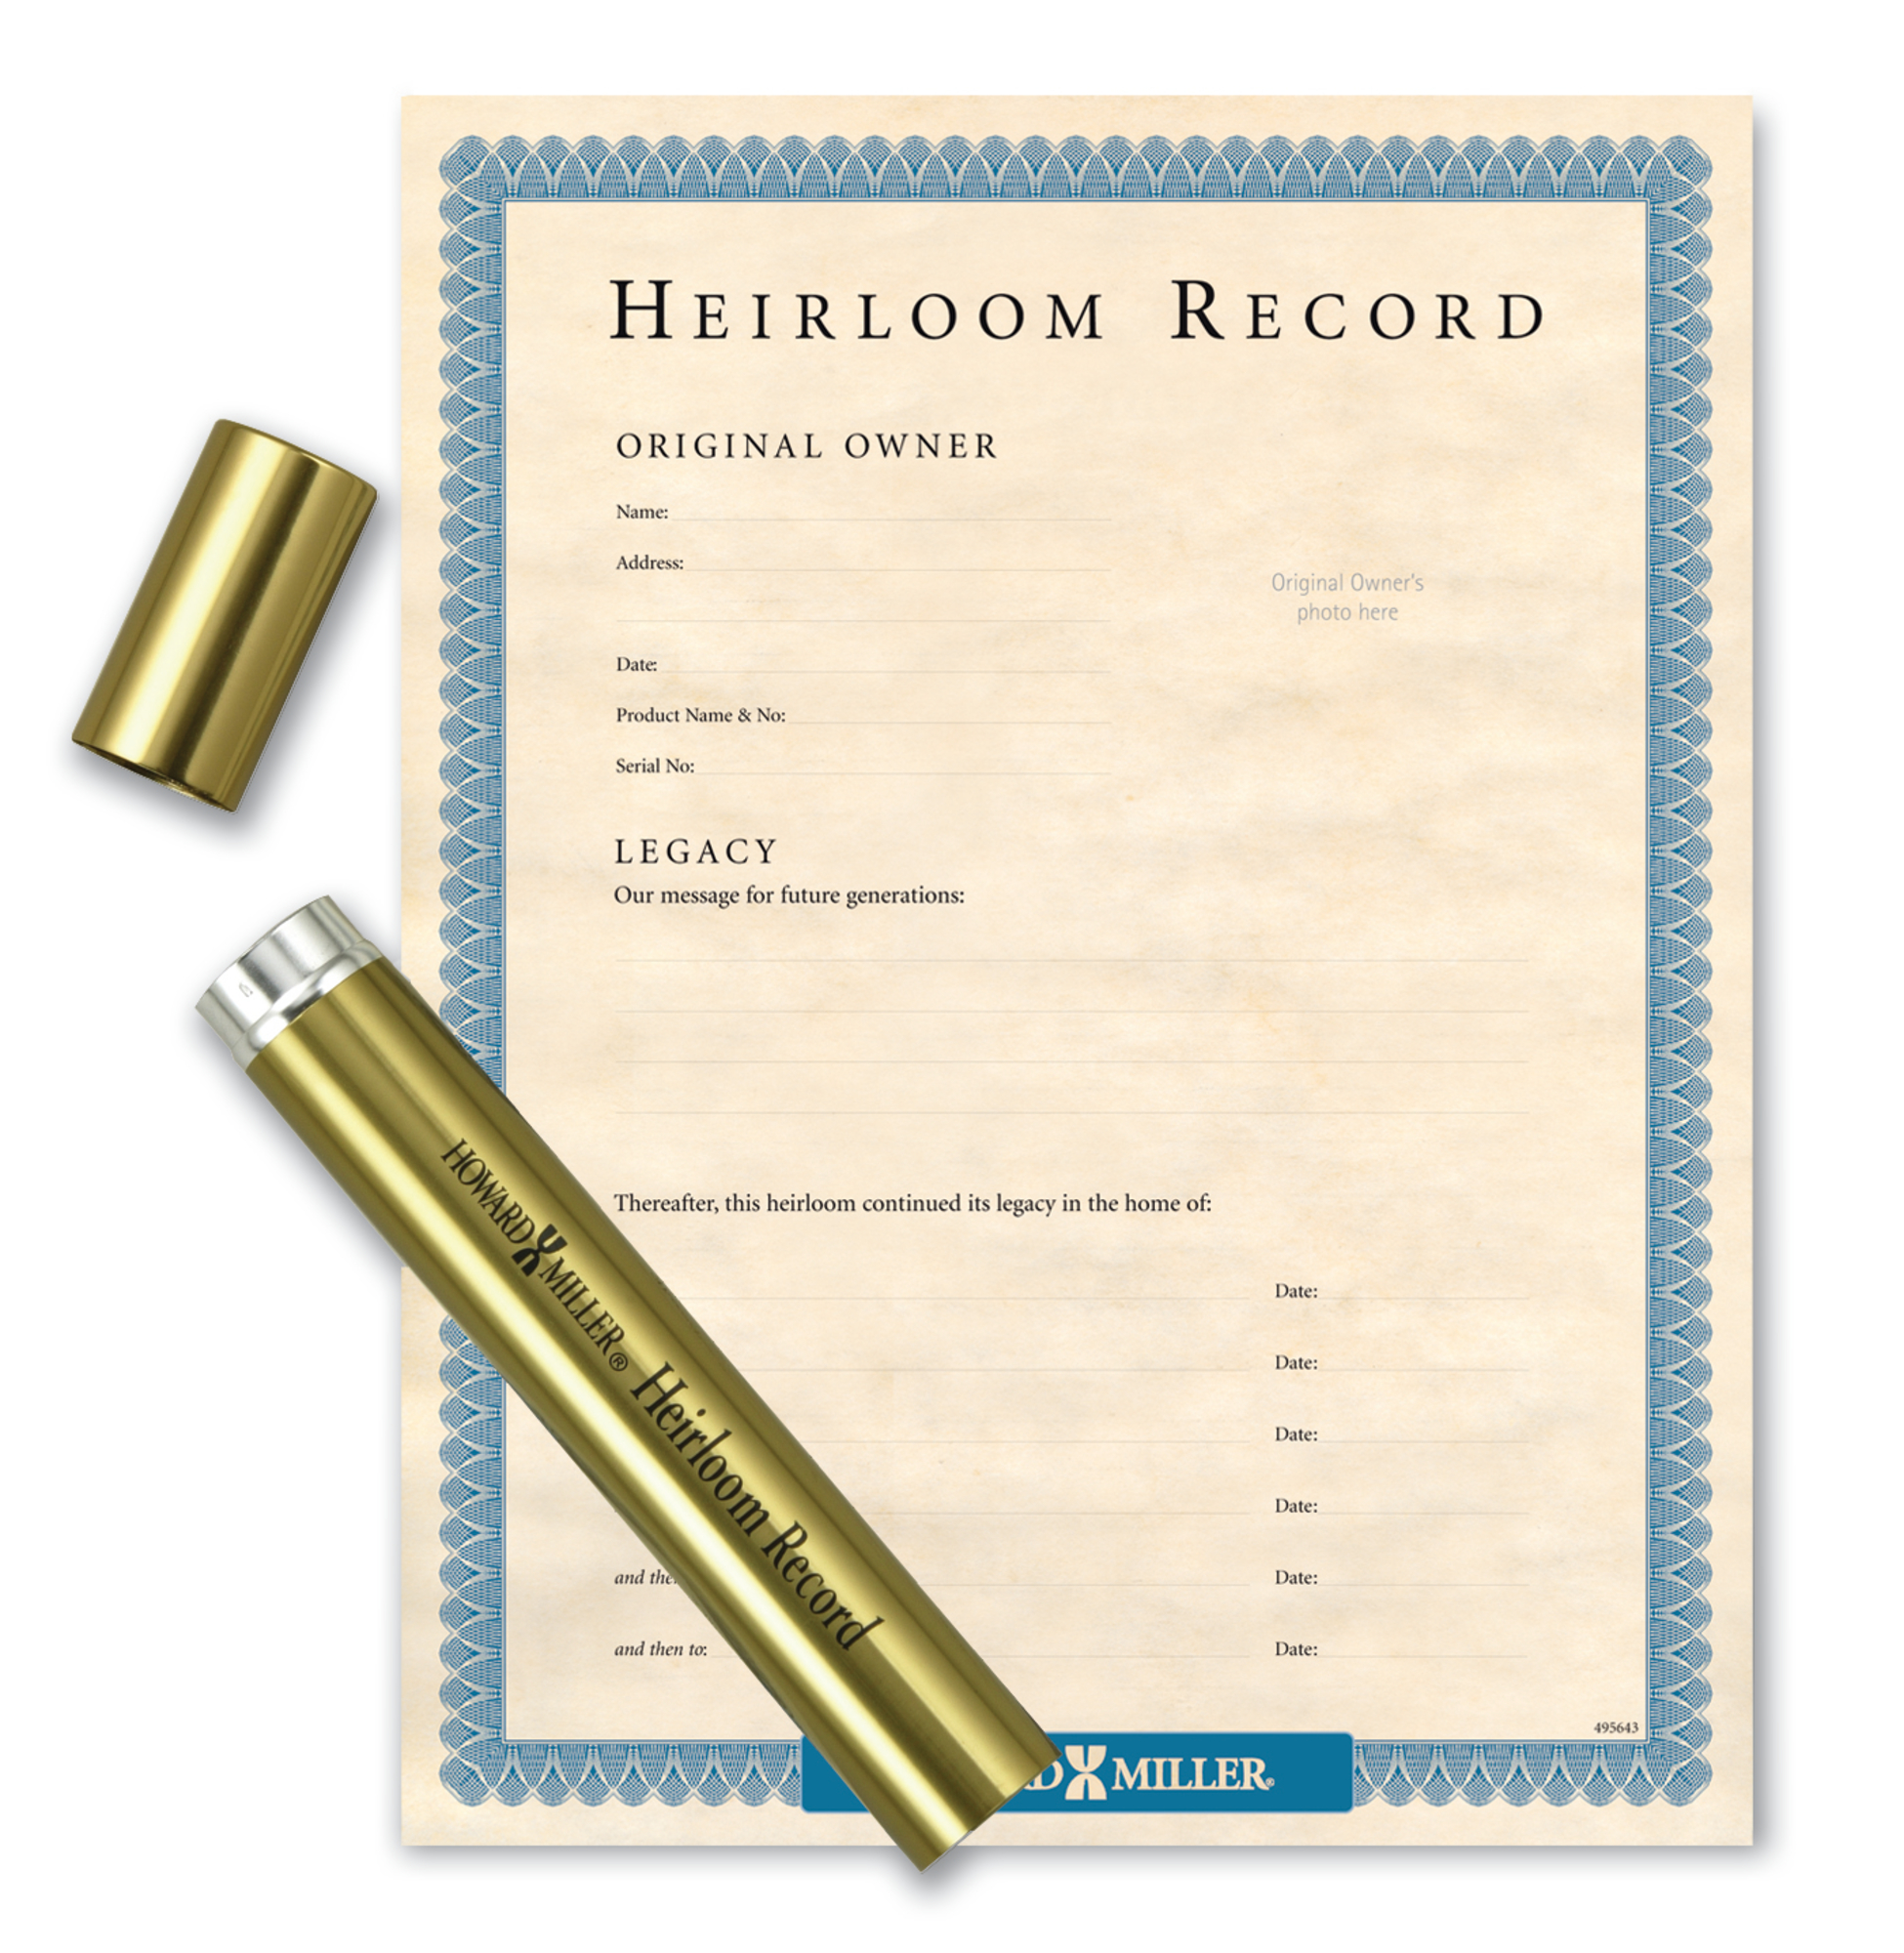 Image for 610009<br>Howard MillerBrass Tube & Heirloom Document from Howard Miller Parts Store